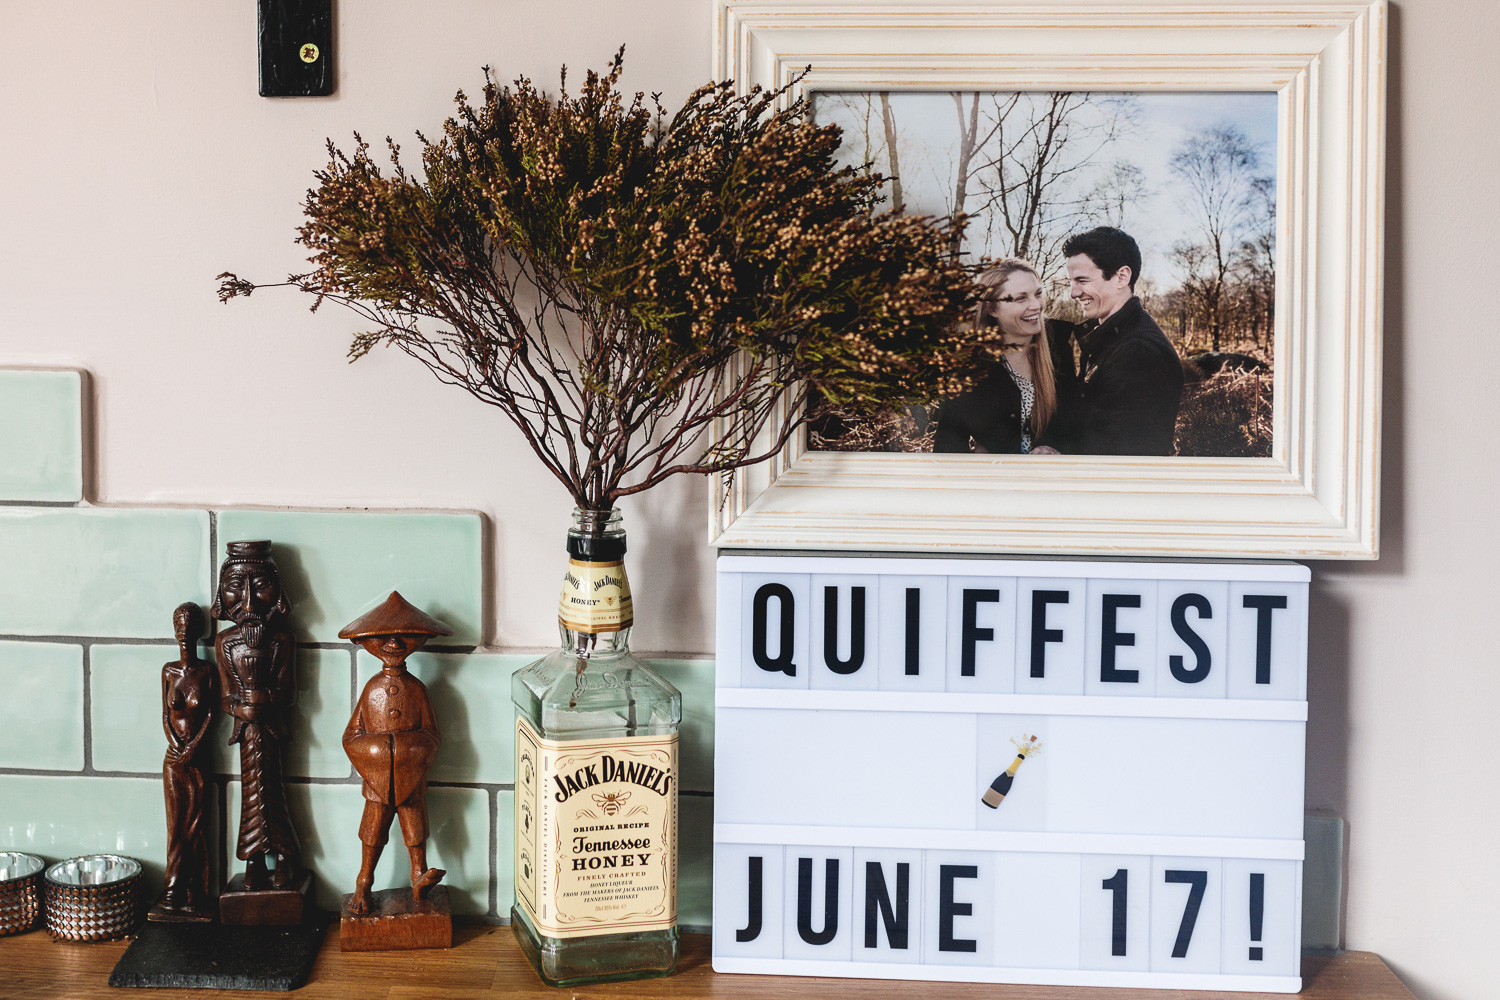 Rustic flowers in whiskey bottle with a light up cinema sign that says Quiffest June 17 with a photo in frame of a fun couple on engagement photo shoot in woods in sheffield